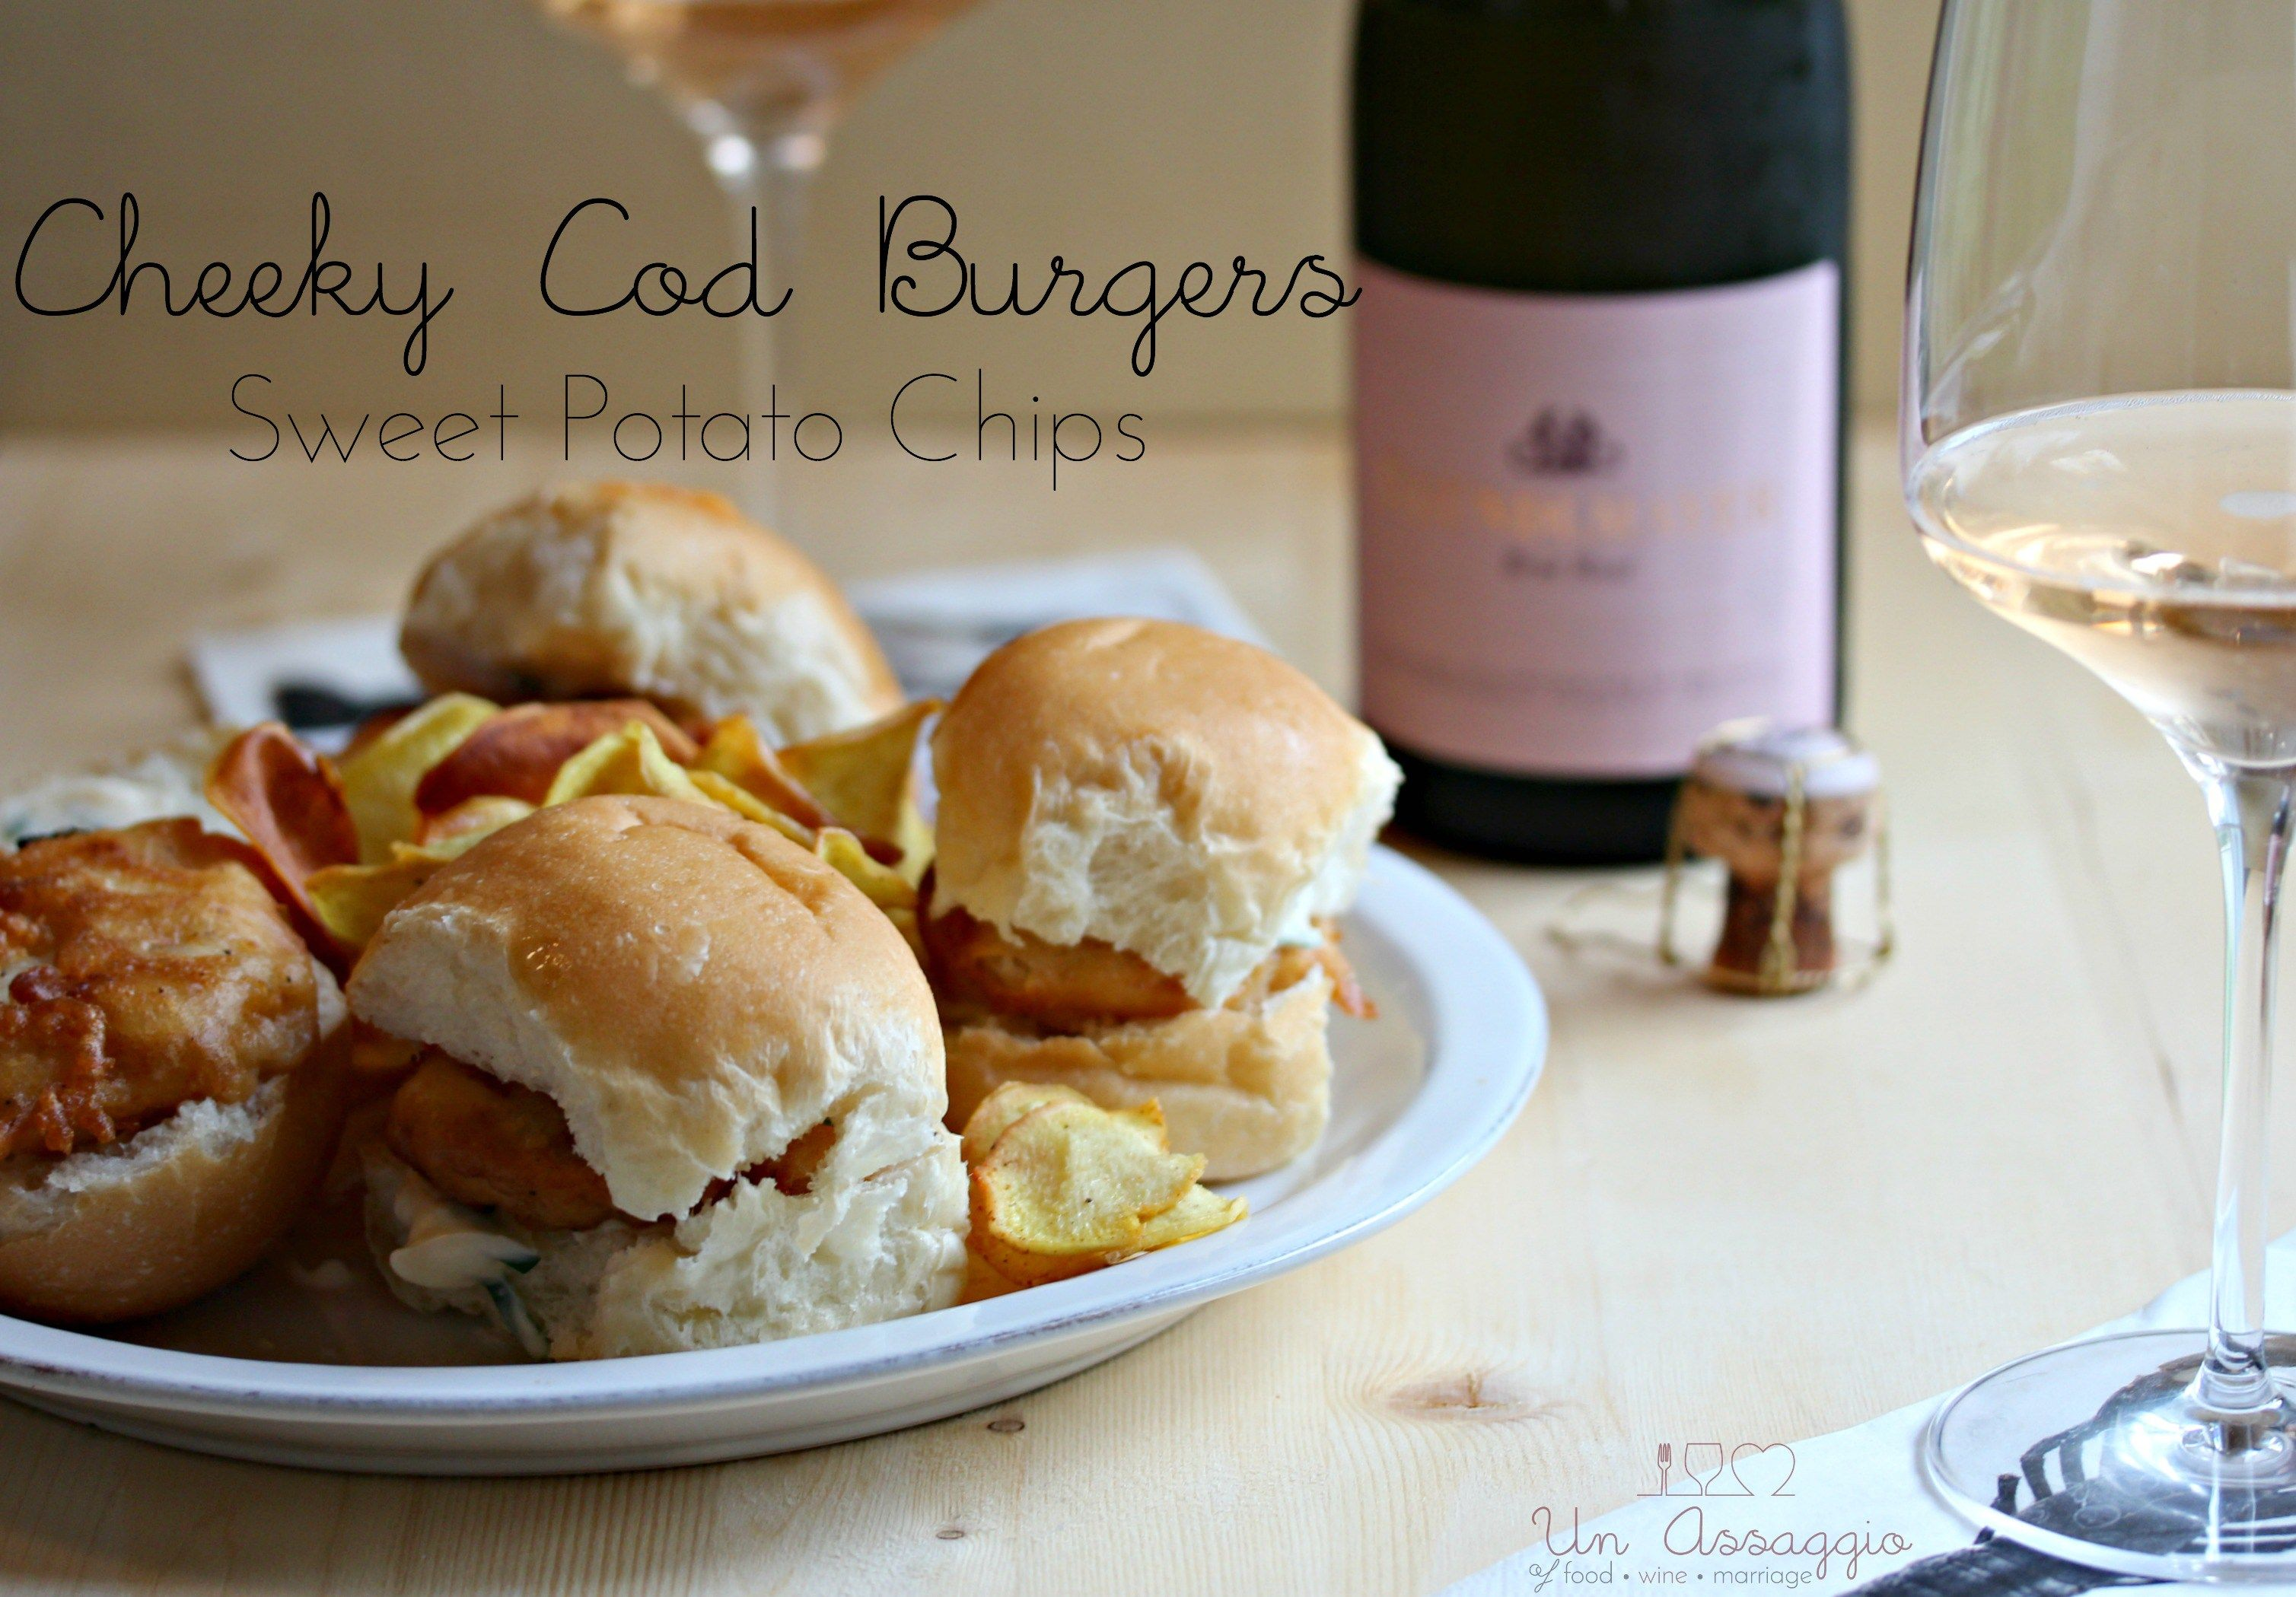 Cheeky cod burger ros wine pairing un assaggio of food wine cheeky cod burger ros wine pairing un assaggio of food wine marriage forumfinder Gallery